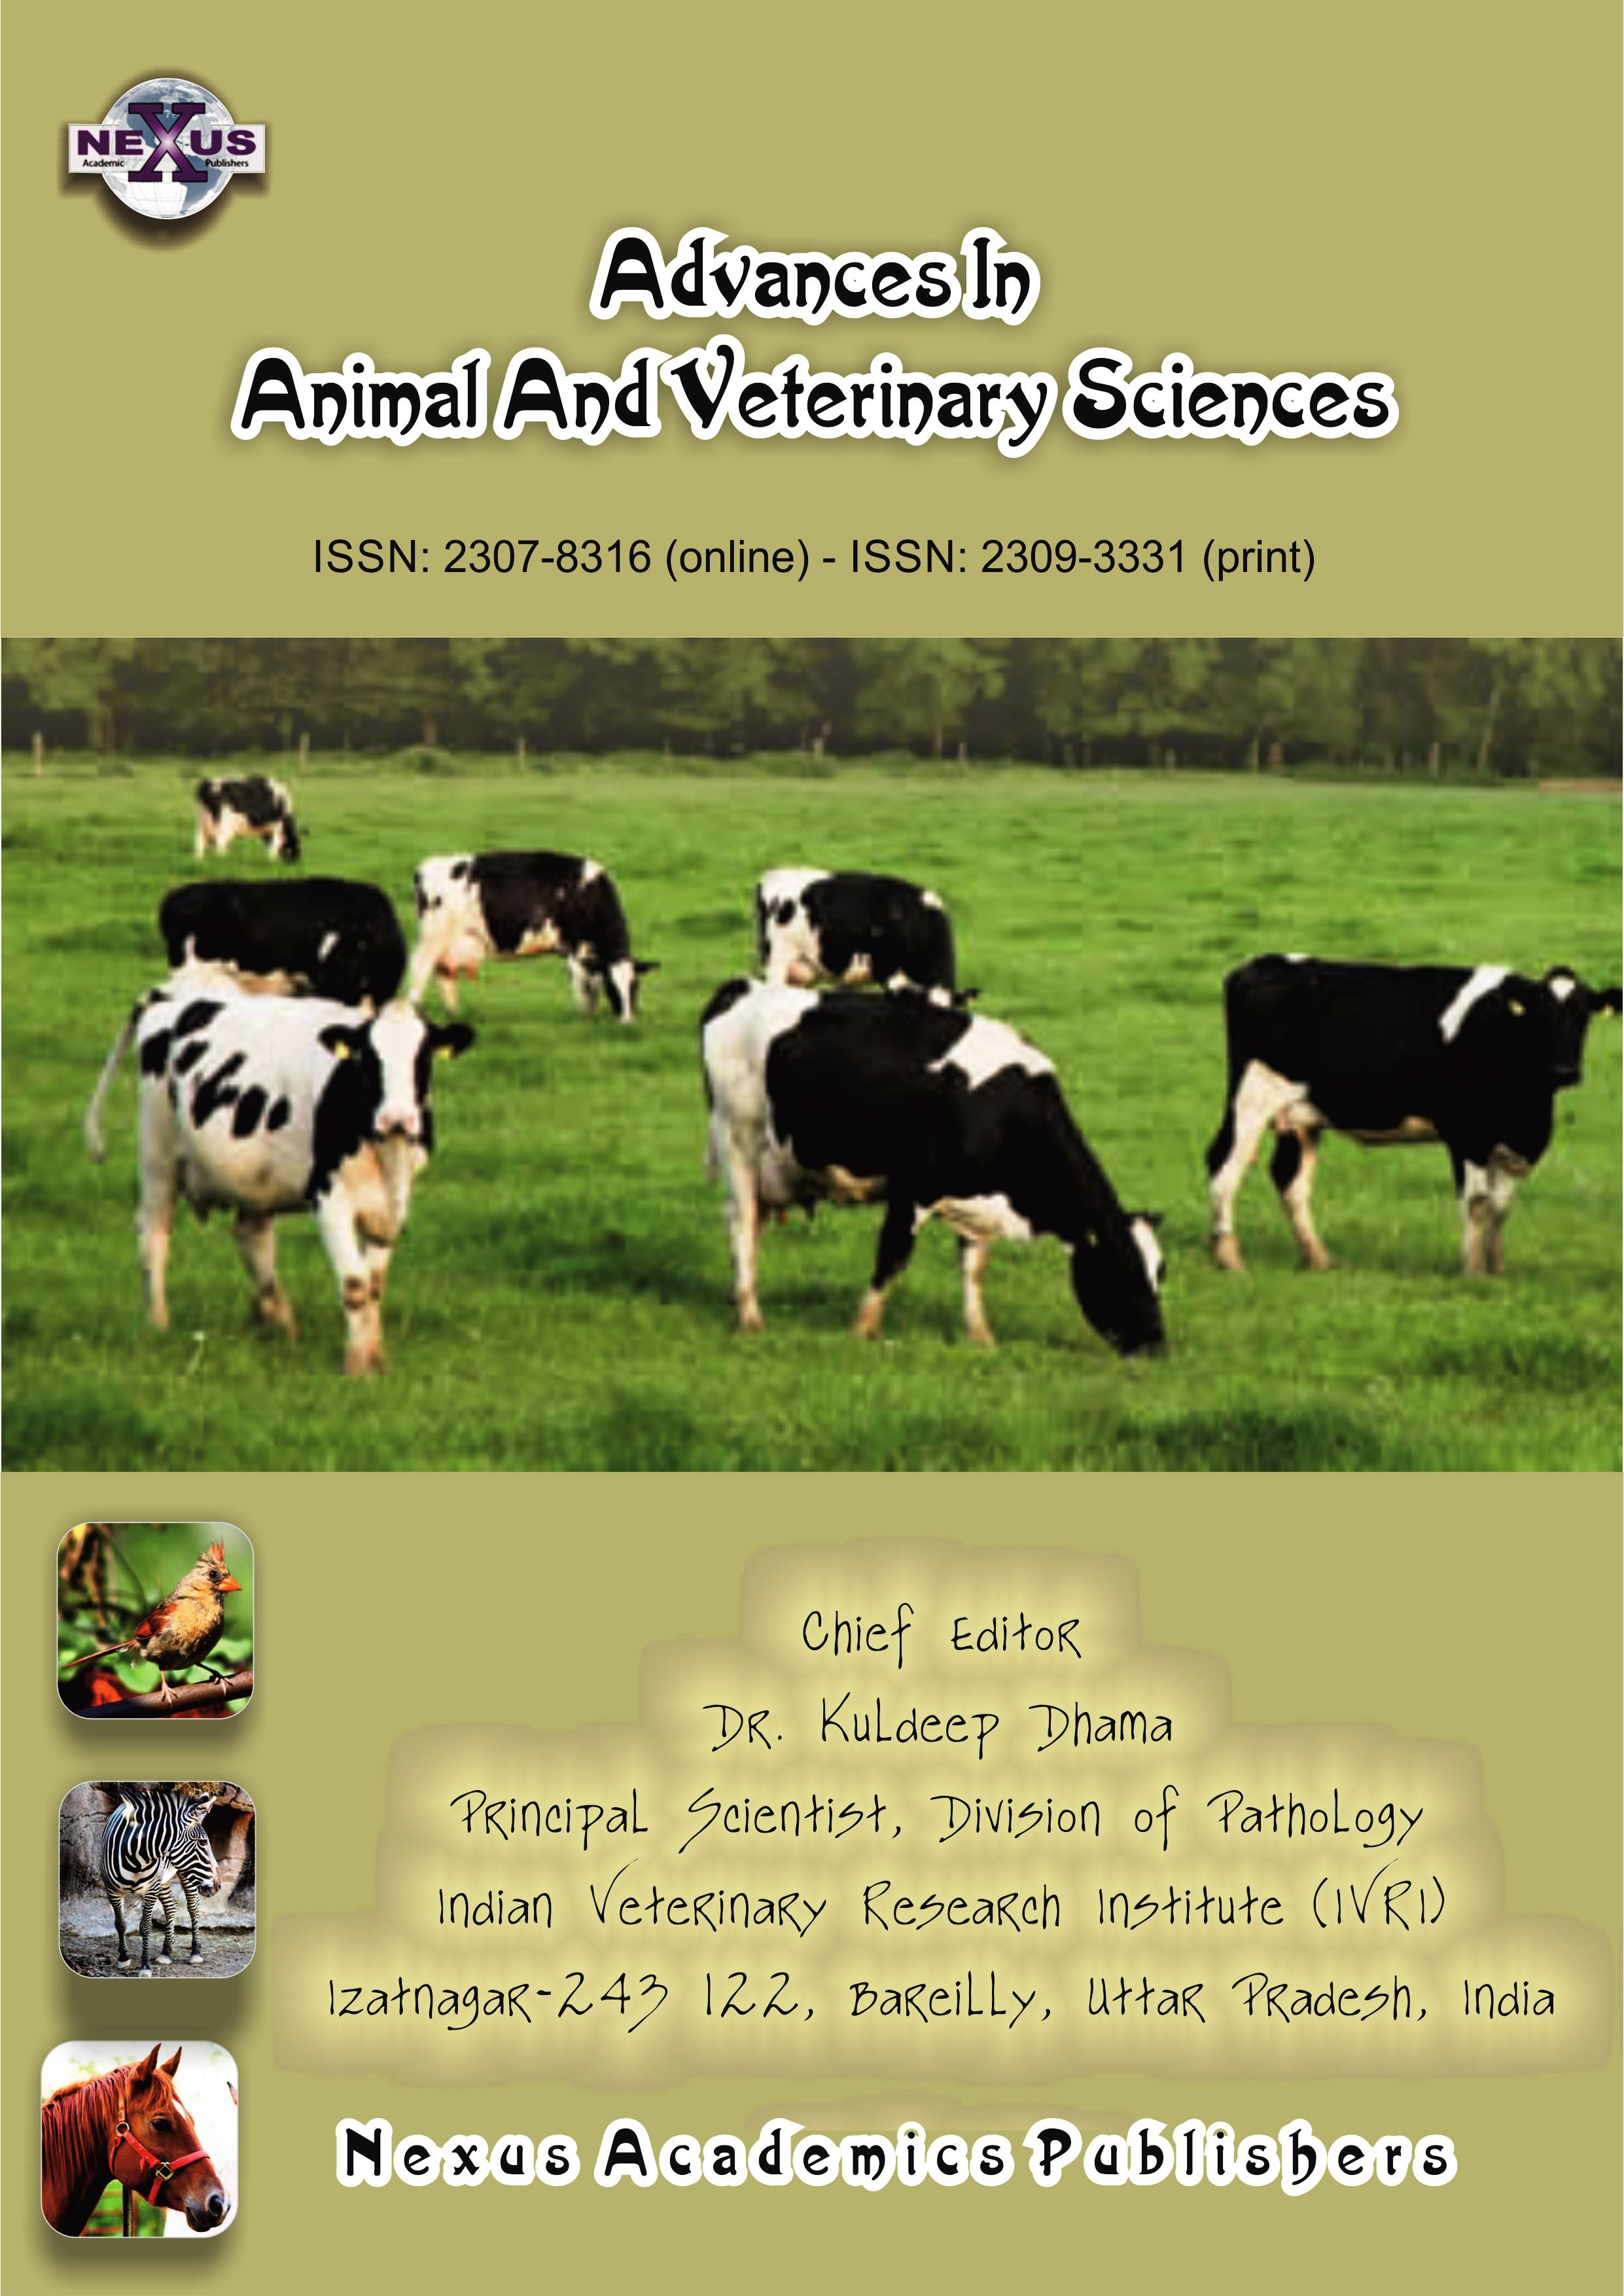 Advances in Animal and Veterinary Sciences